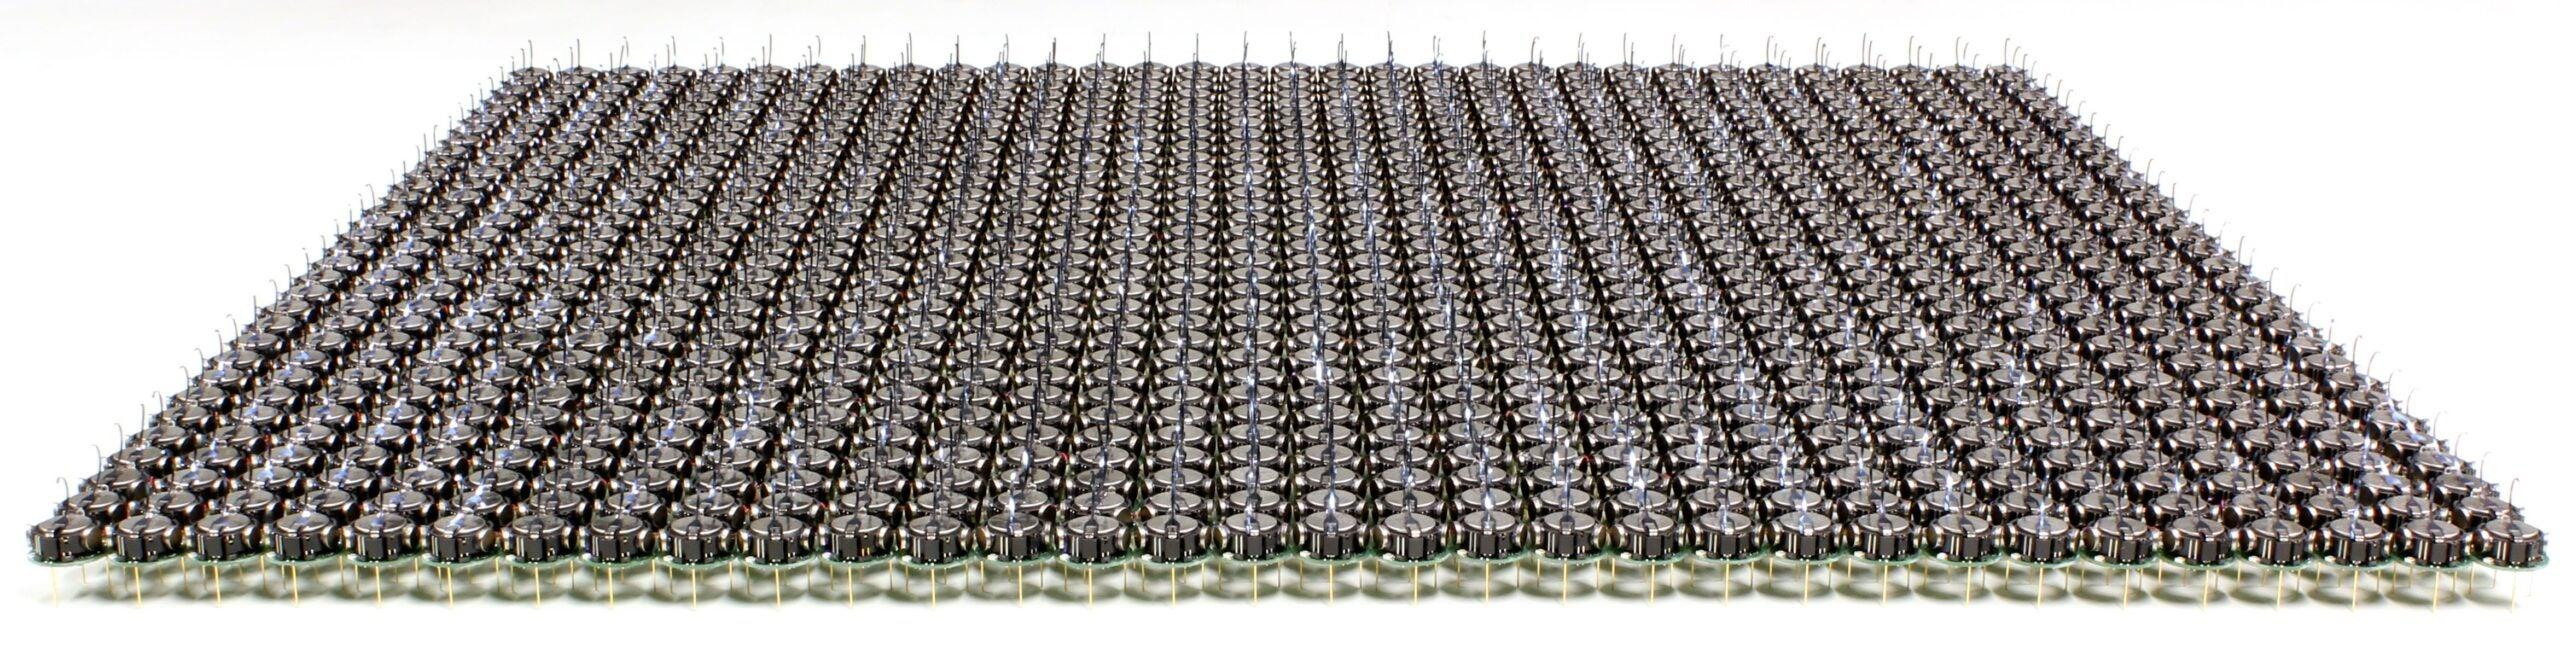 1,024 Robots Self-Assemble Into Any Shape You Want